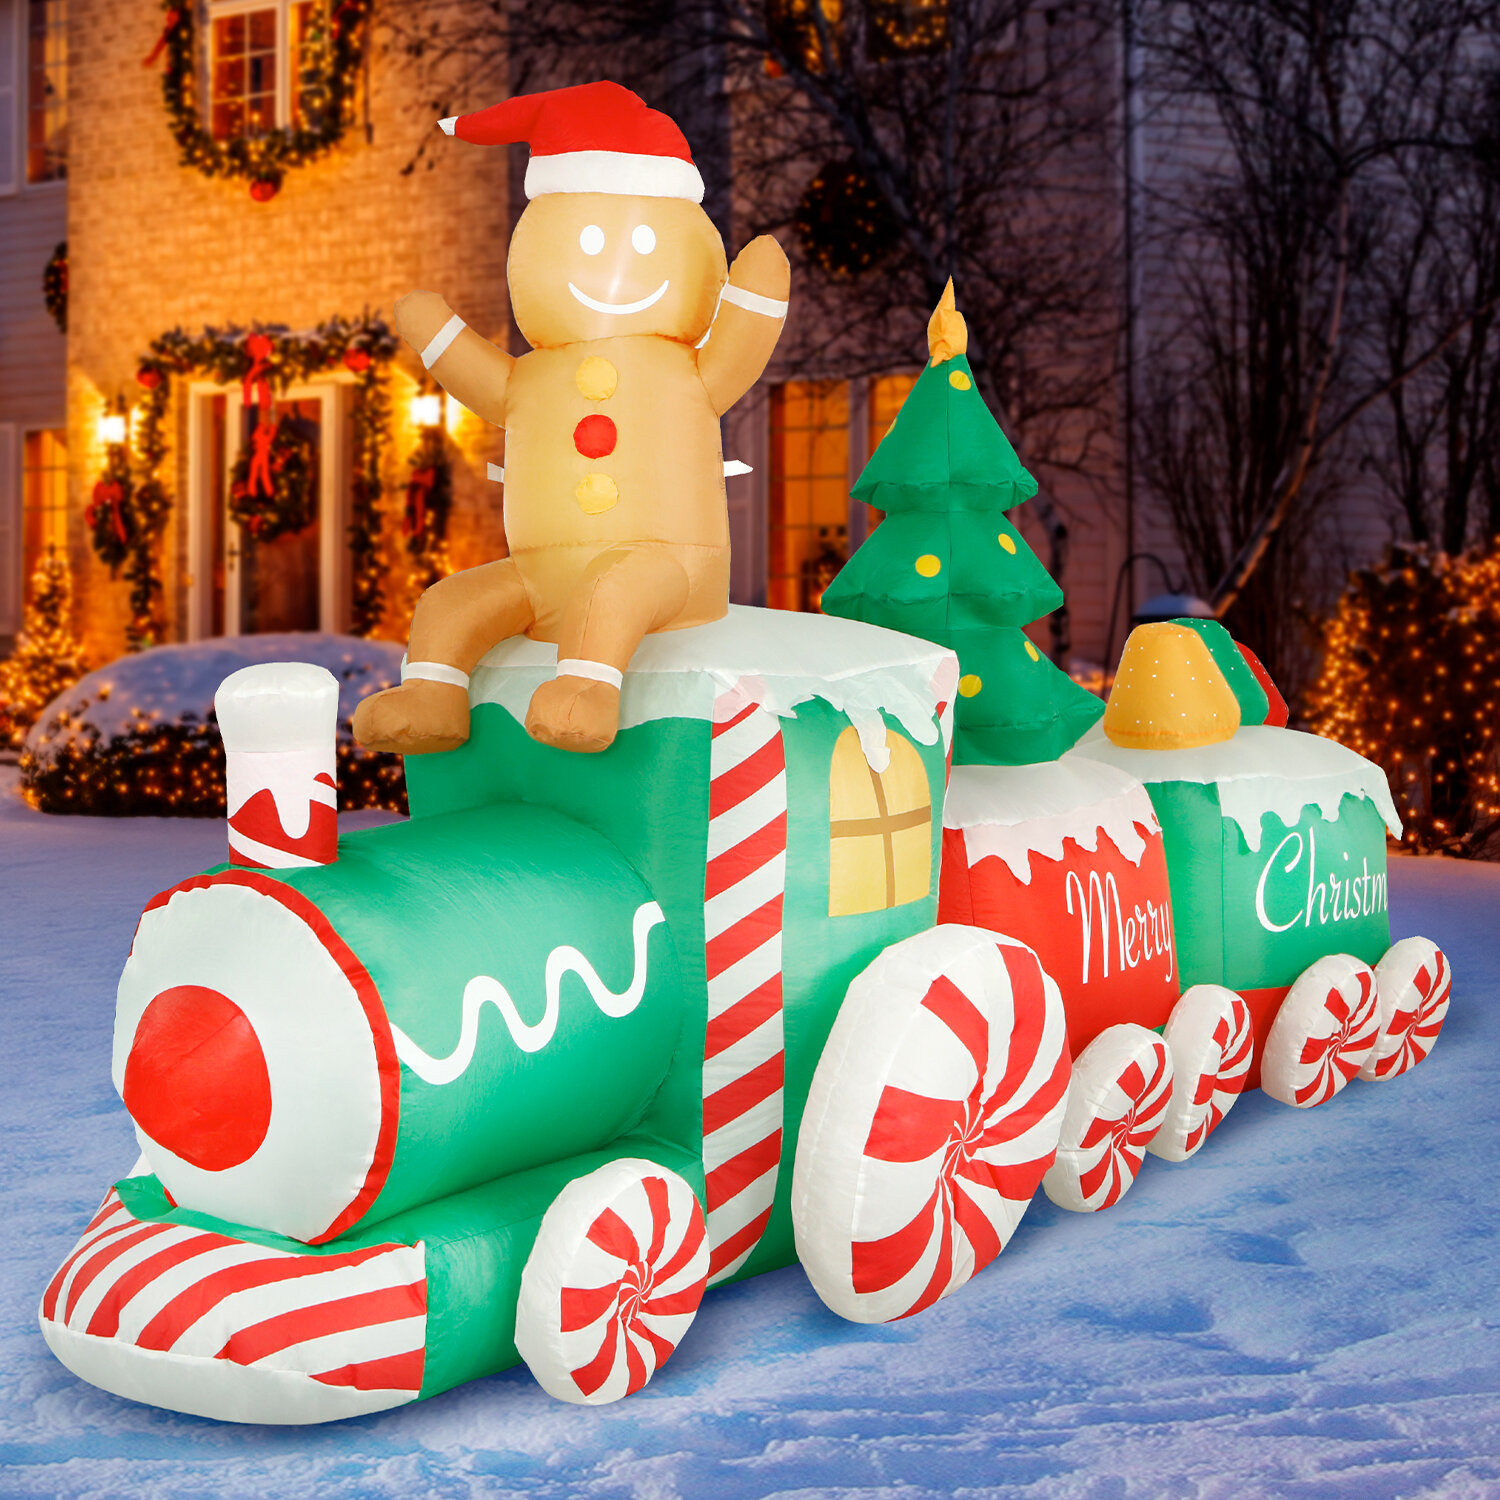 10 Ft Inflatable Christmas Train Outdoor Decoration Lighted Blow Up Inflatable Yard Decorations With Fan And Stakes